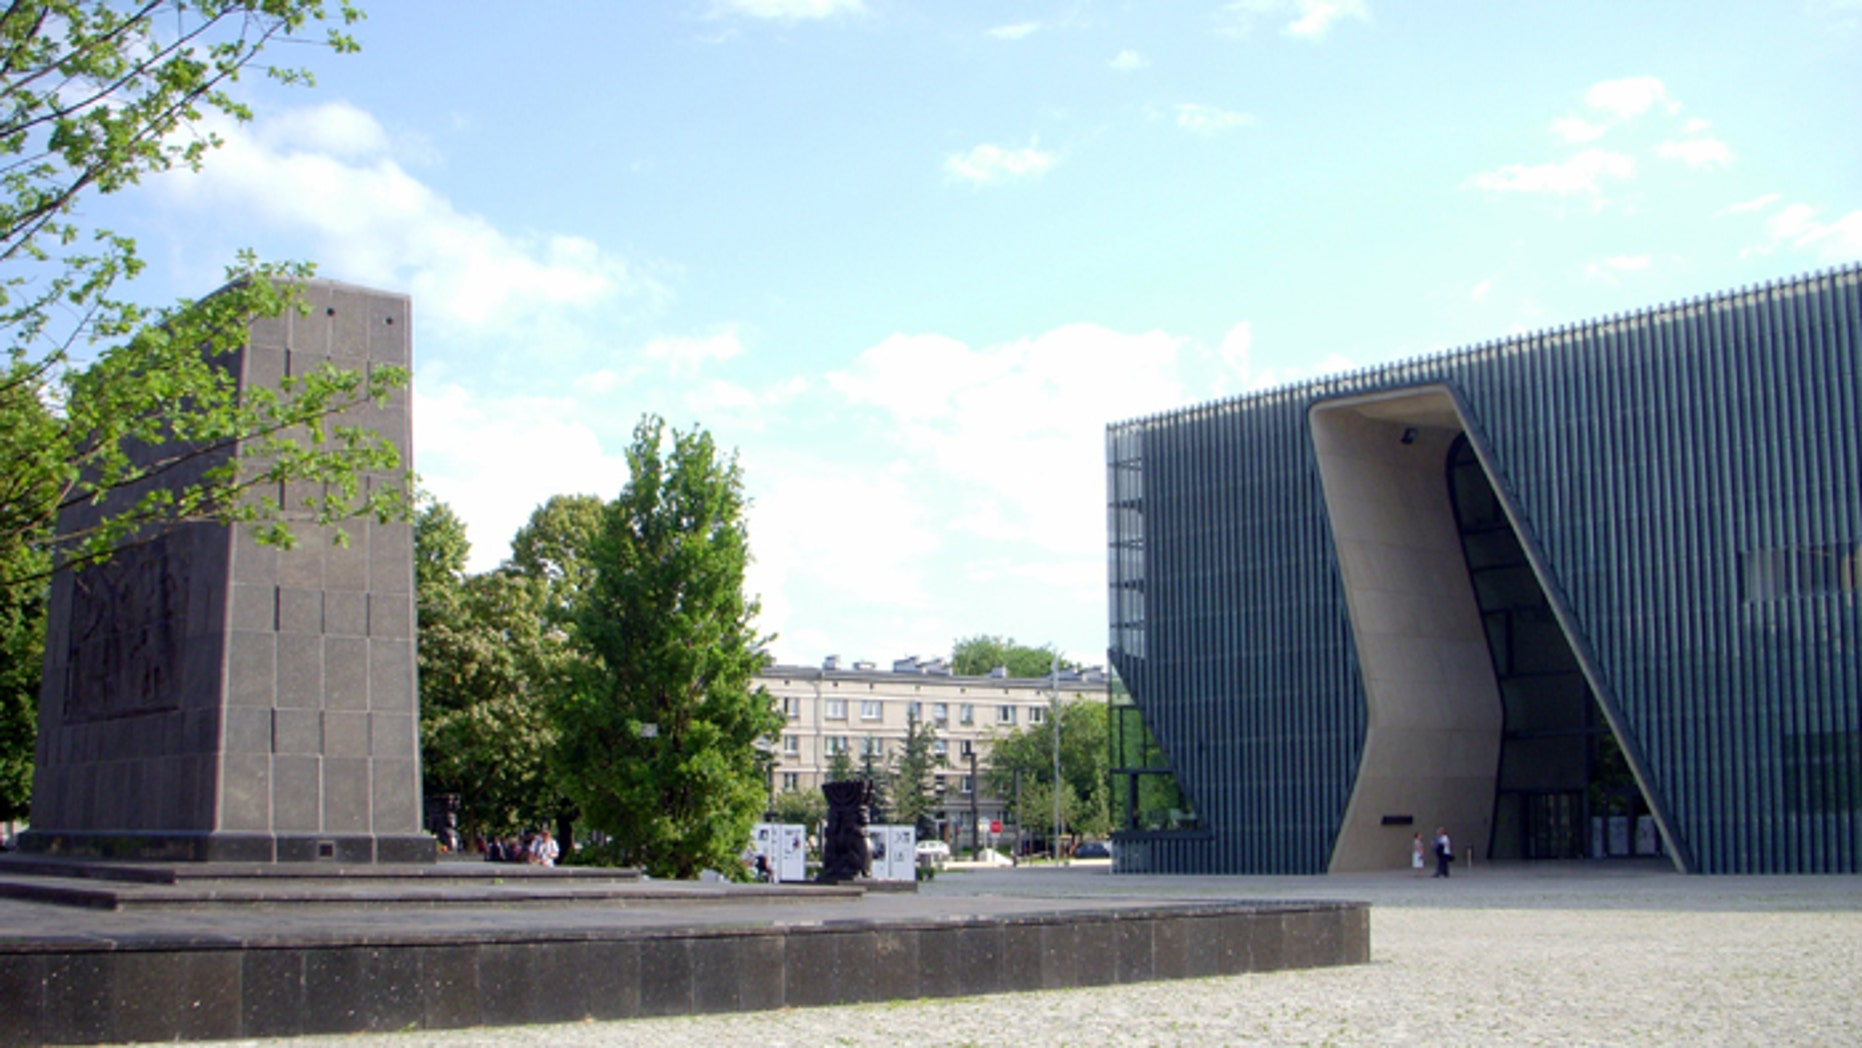 Polish officials hope the Museum of the History of Polish Jews can be a force for educating a new generation on the importance of tolerance and the contribution of Poland's Jewish population.